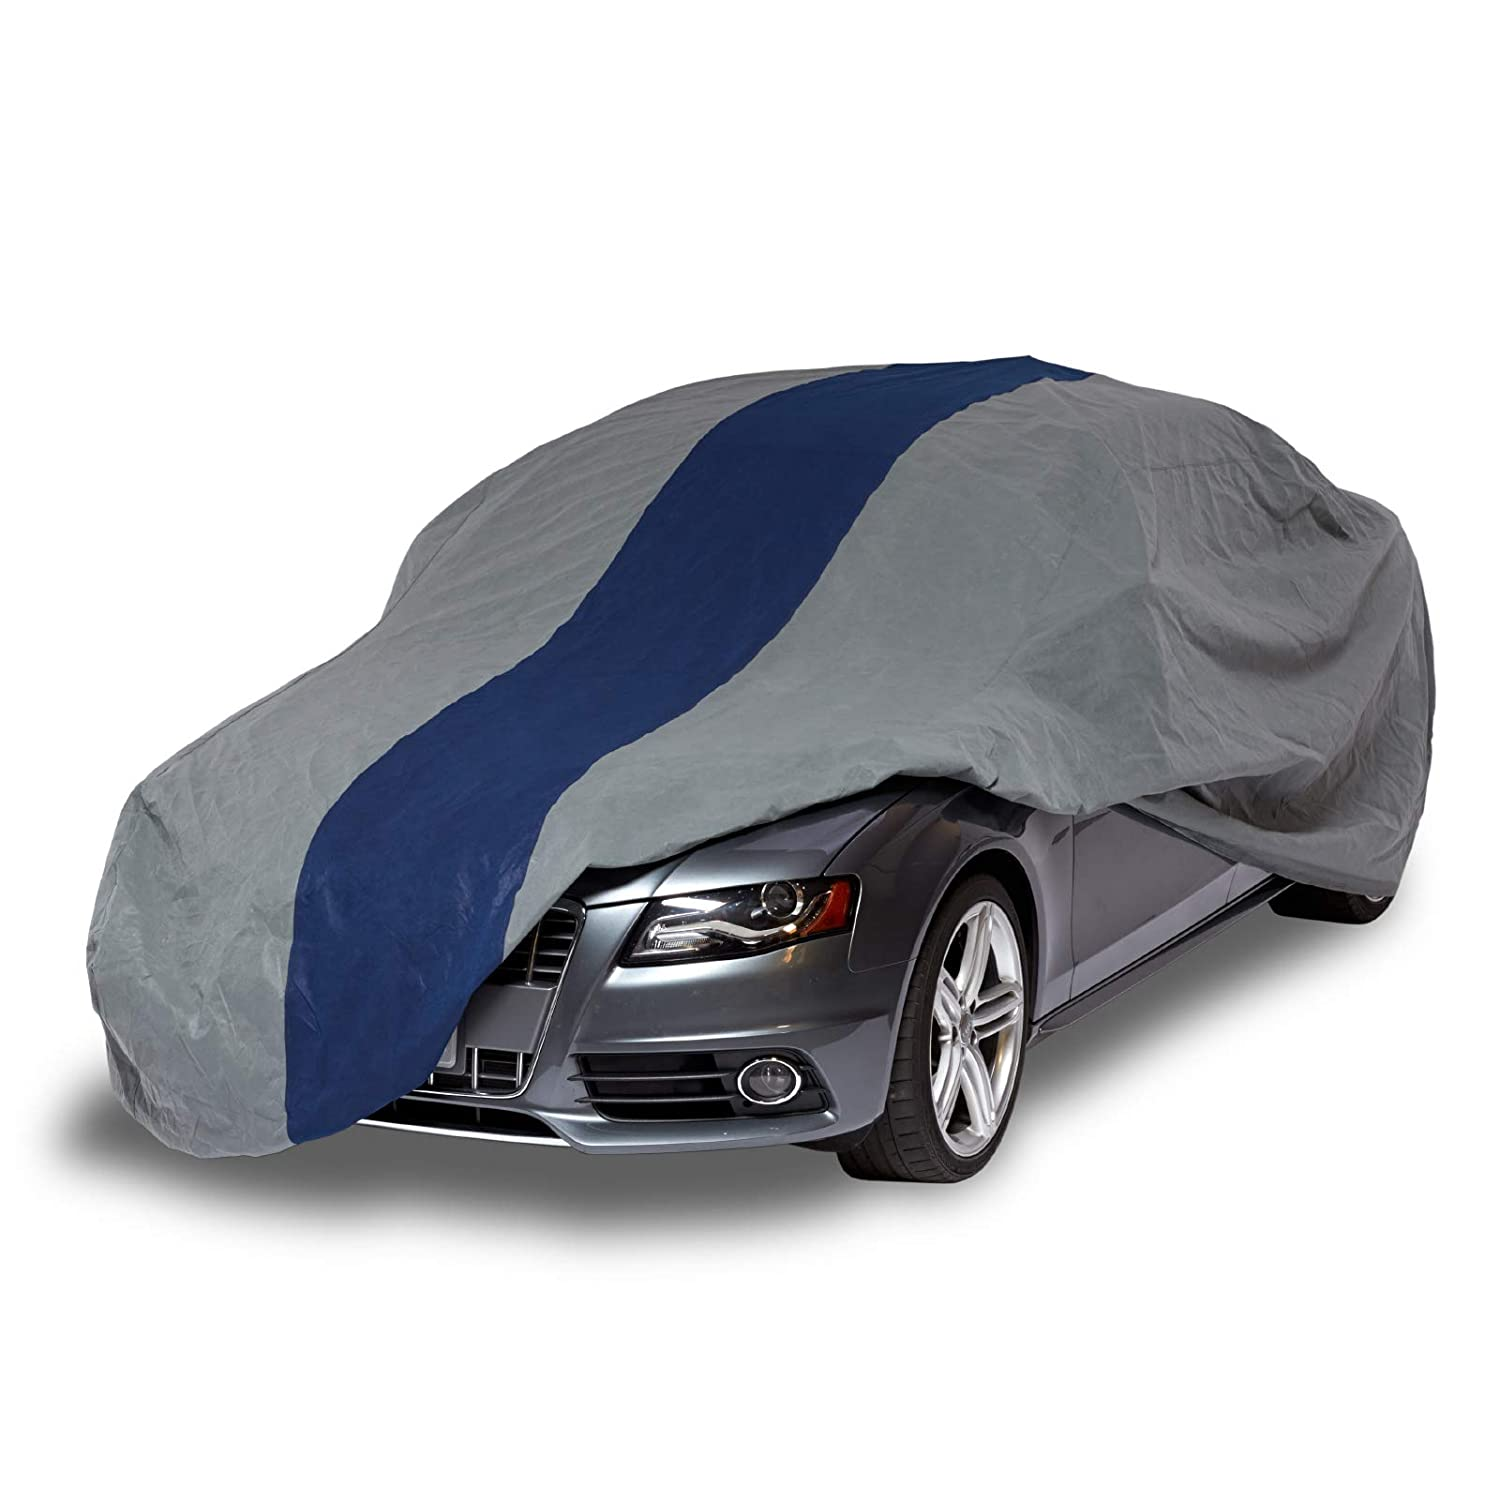 Duck Covers Double Defender Indoor/Outdoor Car Cover, 3 Layers, All Weather Protection, Limited 3 Year Warranty,  Fits Sedans up to 22 ft. A2C264